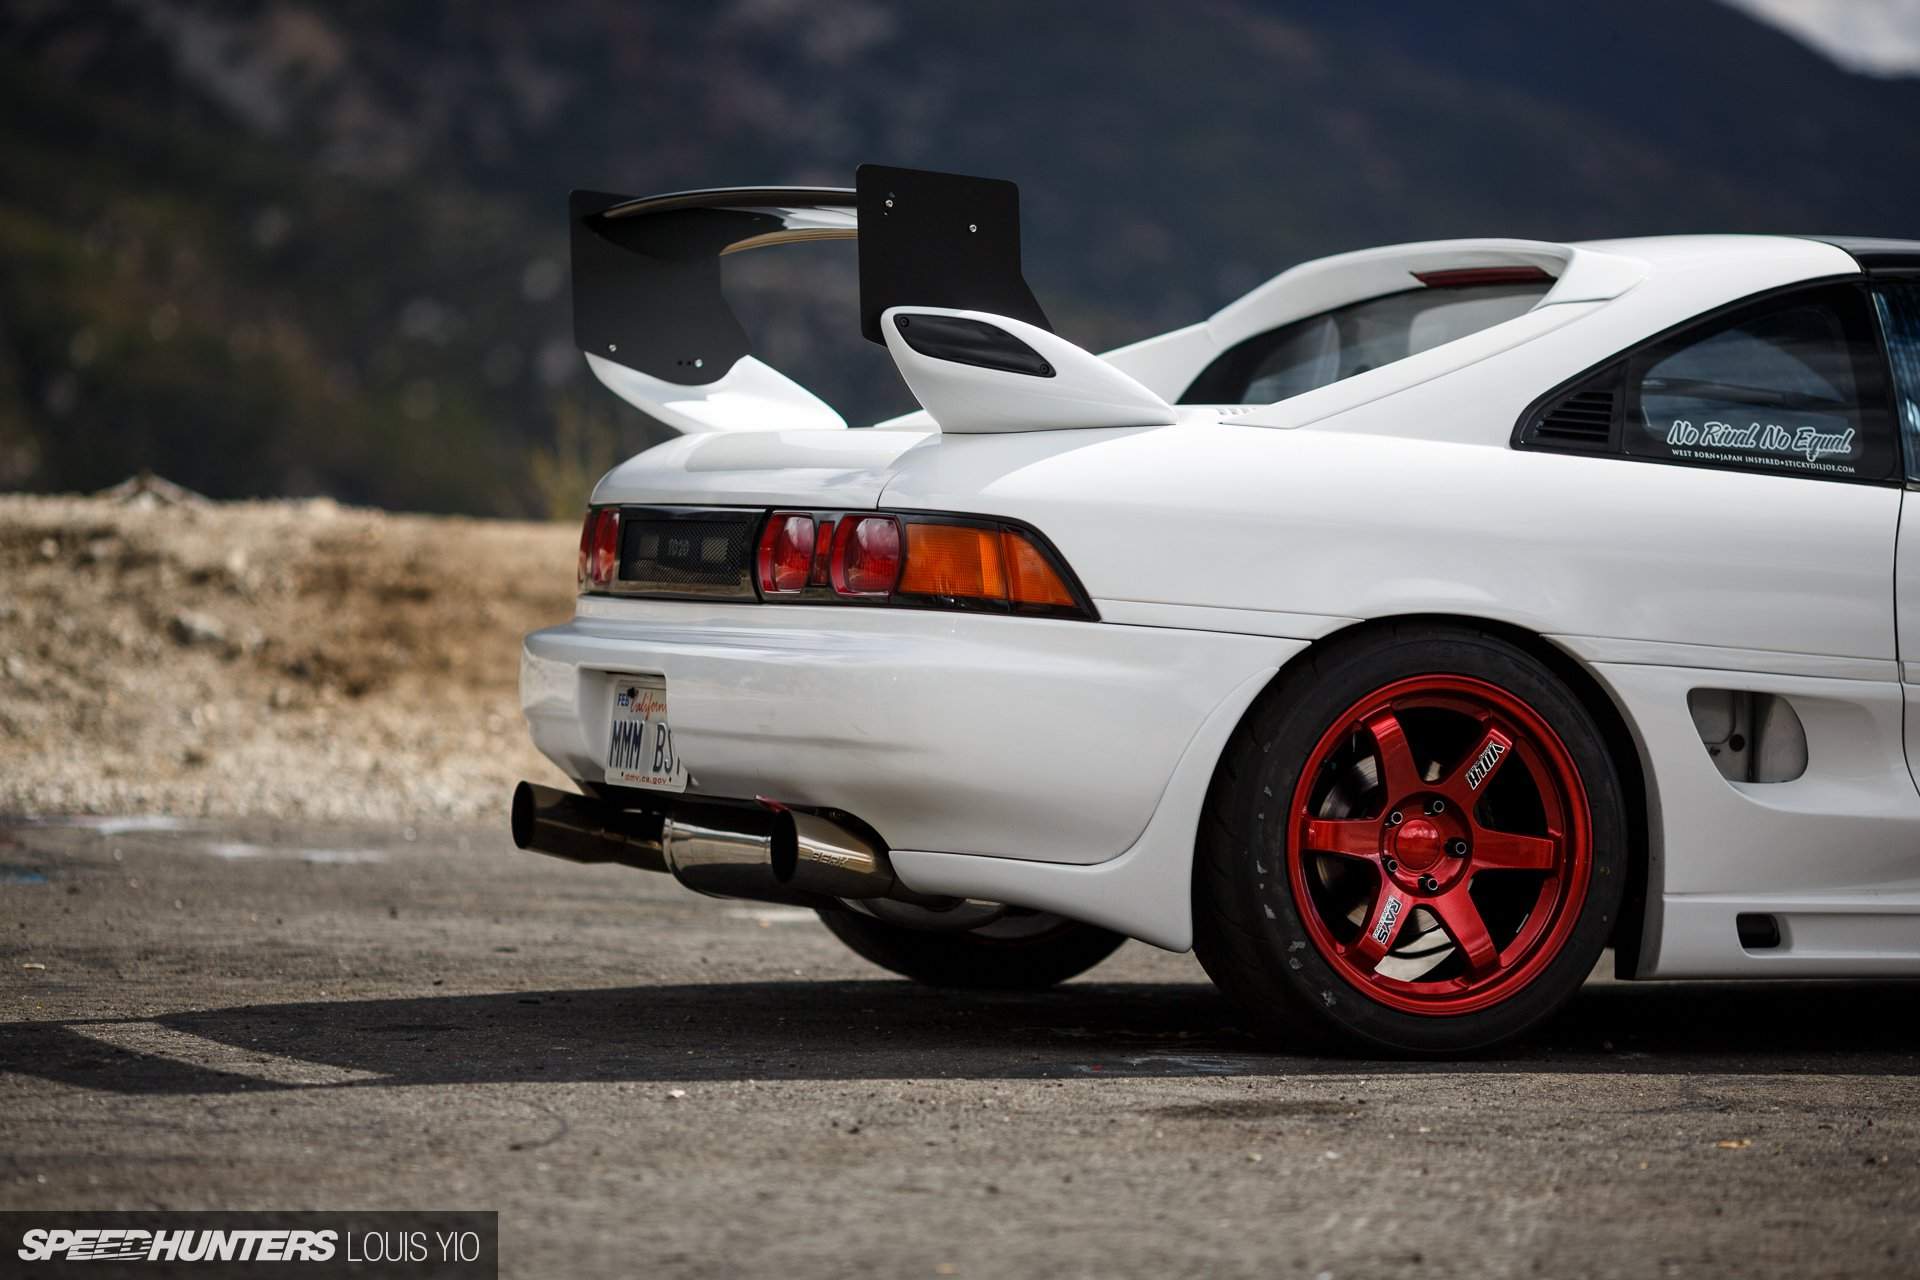 Sw20 Toyota Mr2 Turbo Tuning Wallpaper 1920x1280